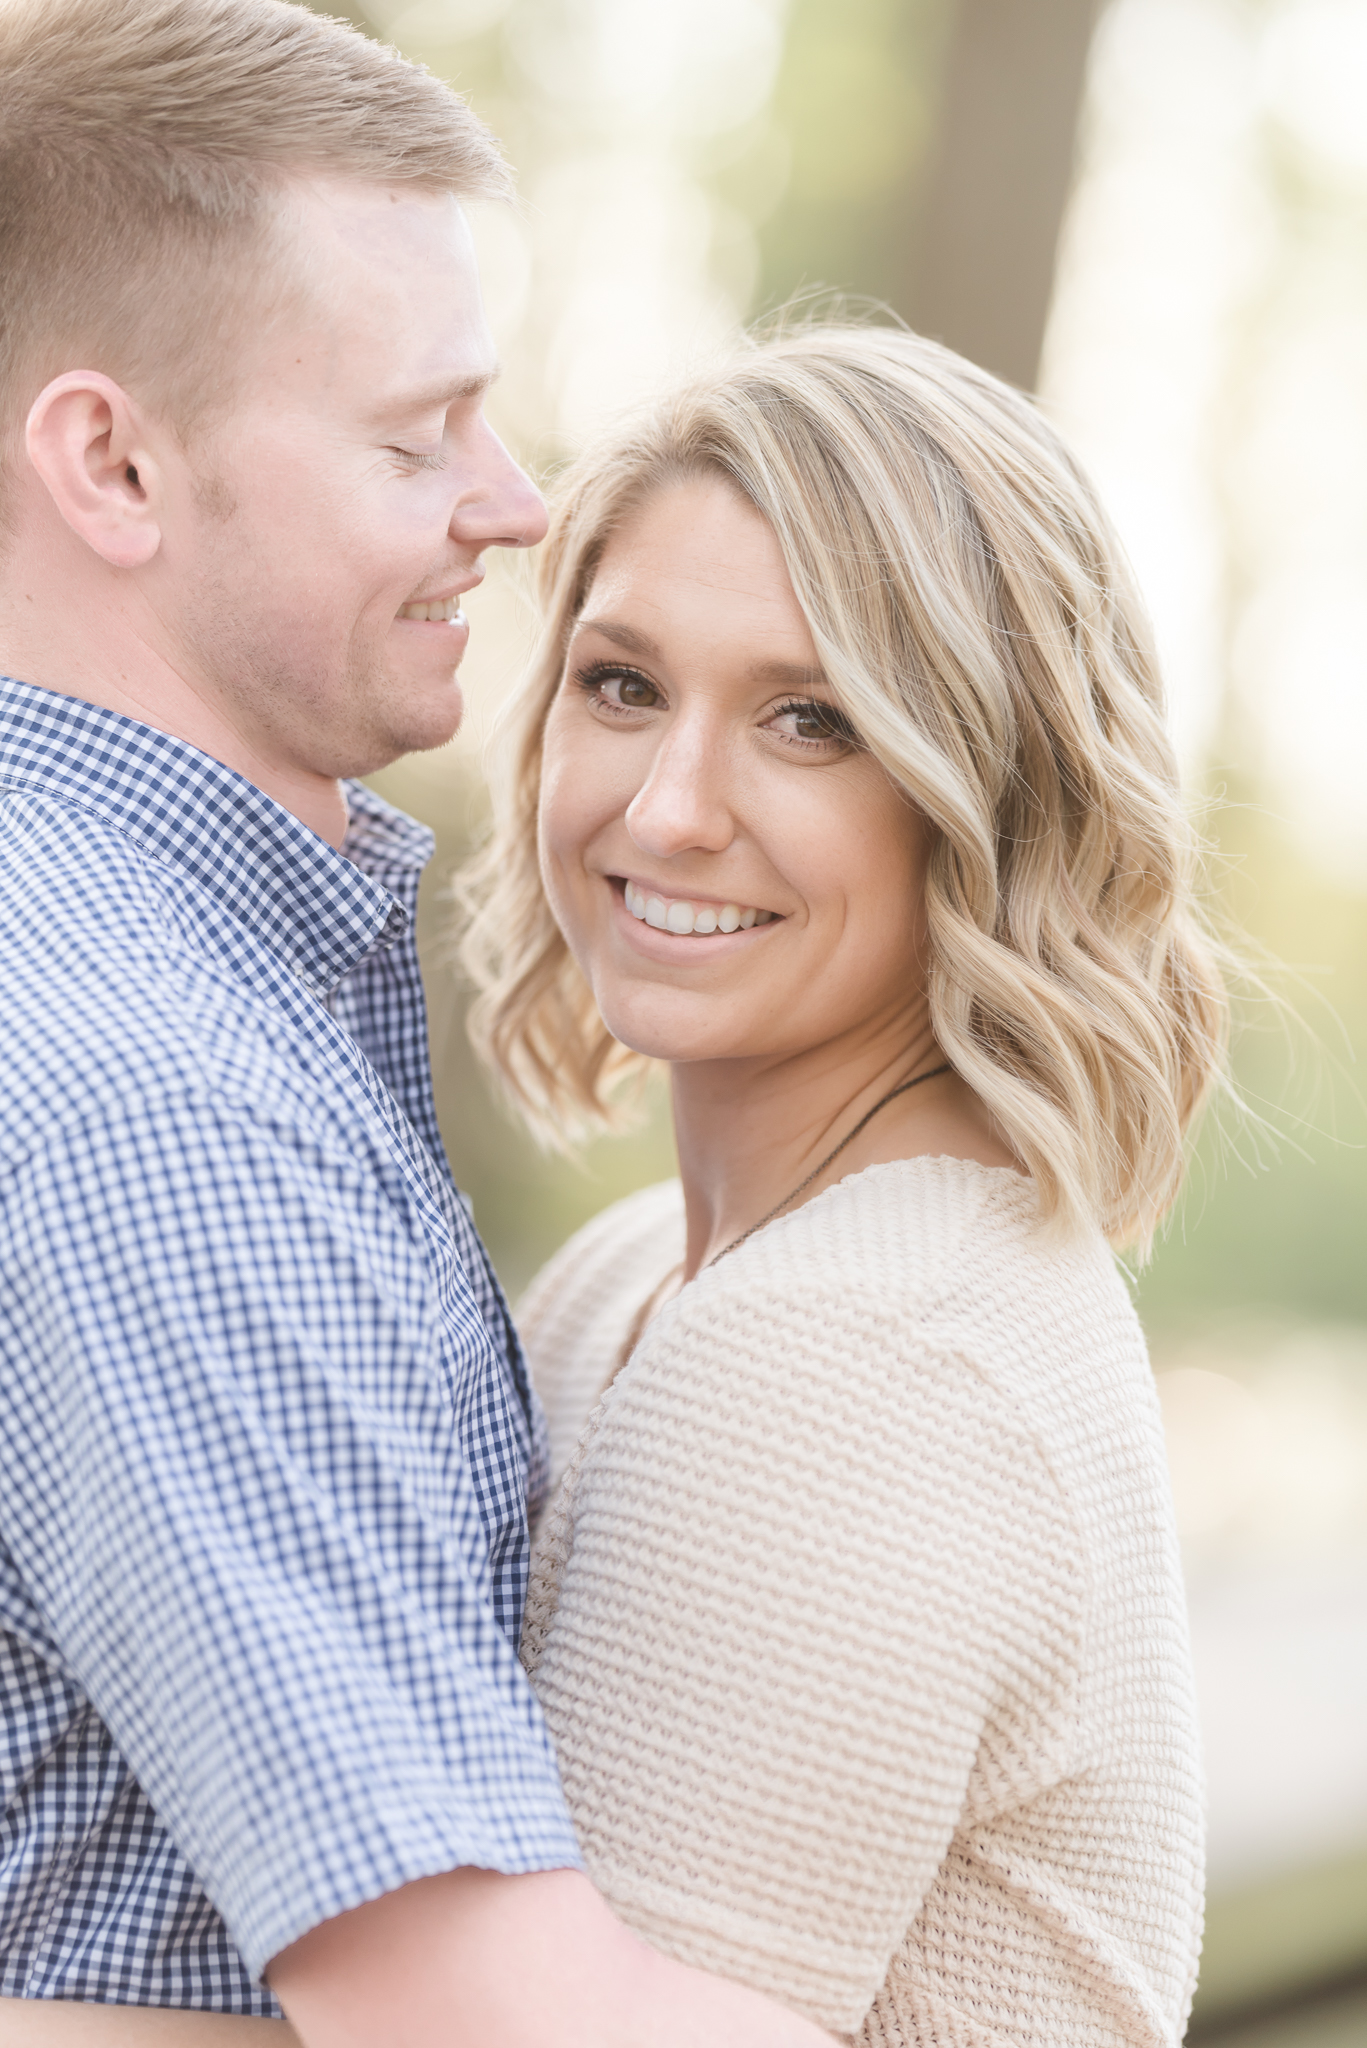 Richie Woods Nature Preserve and Mustard Seed Gardens Engagement Session Wedding Photos-14.jpg